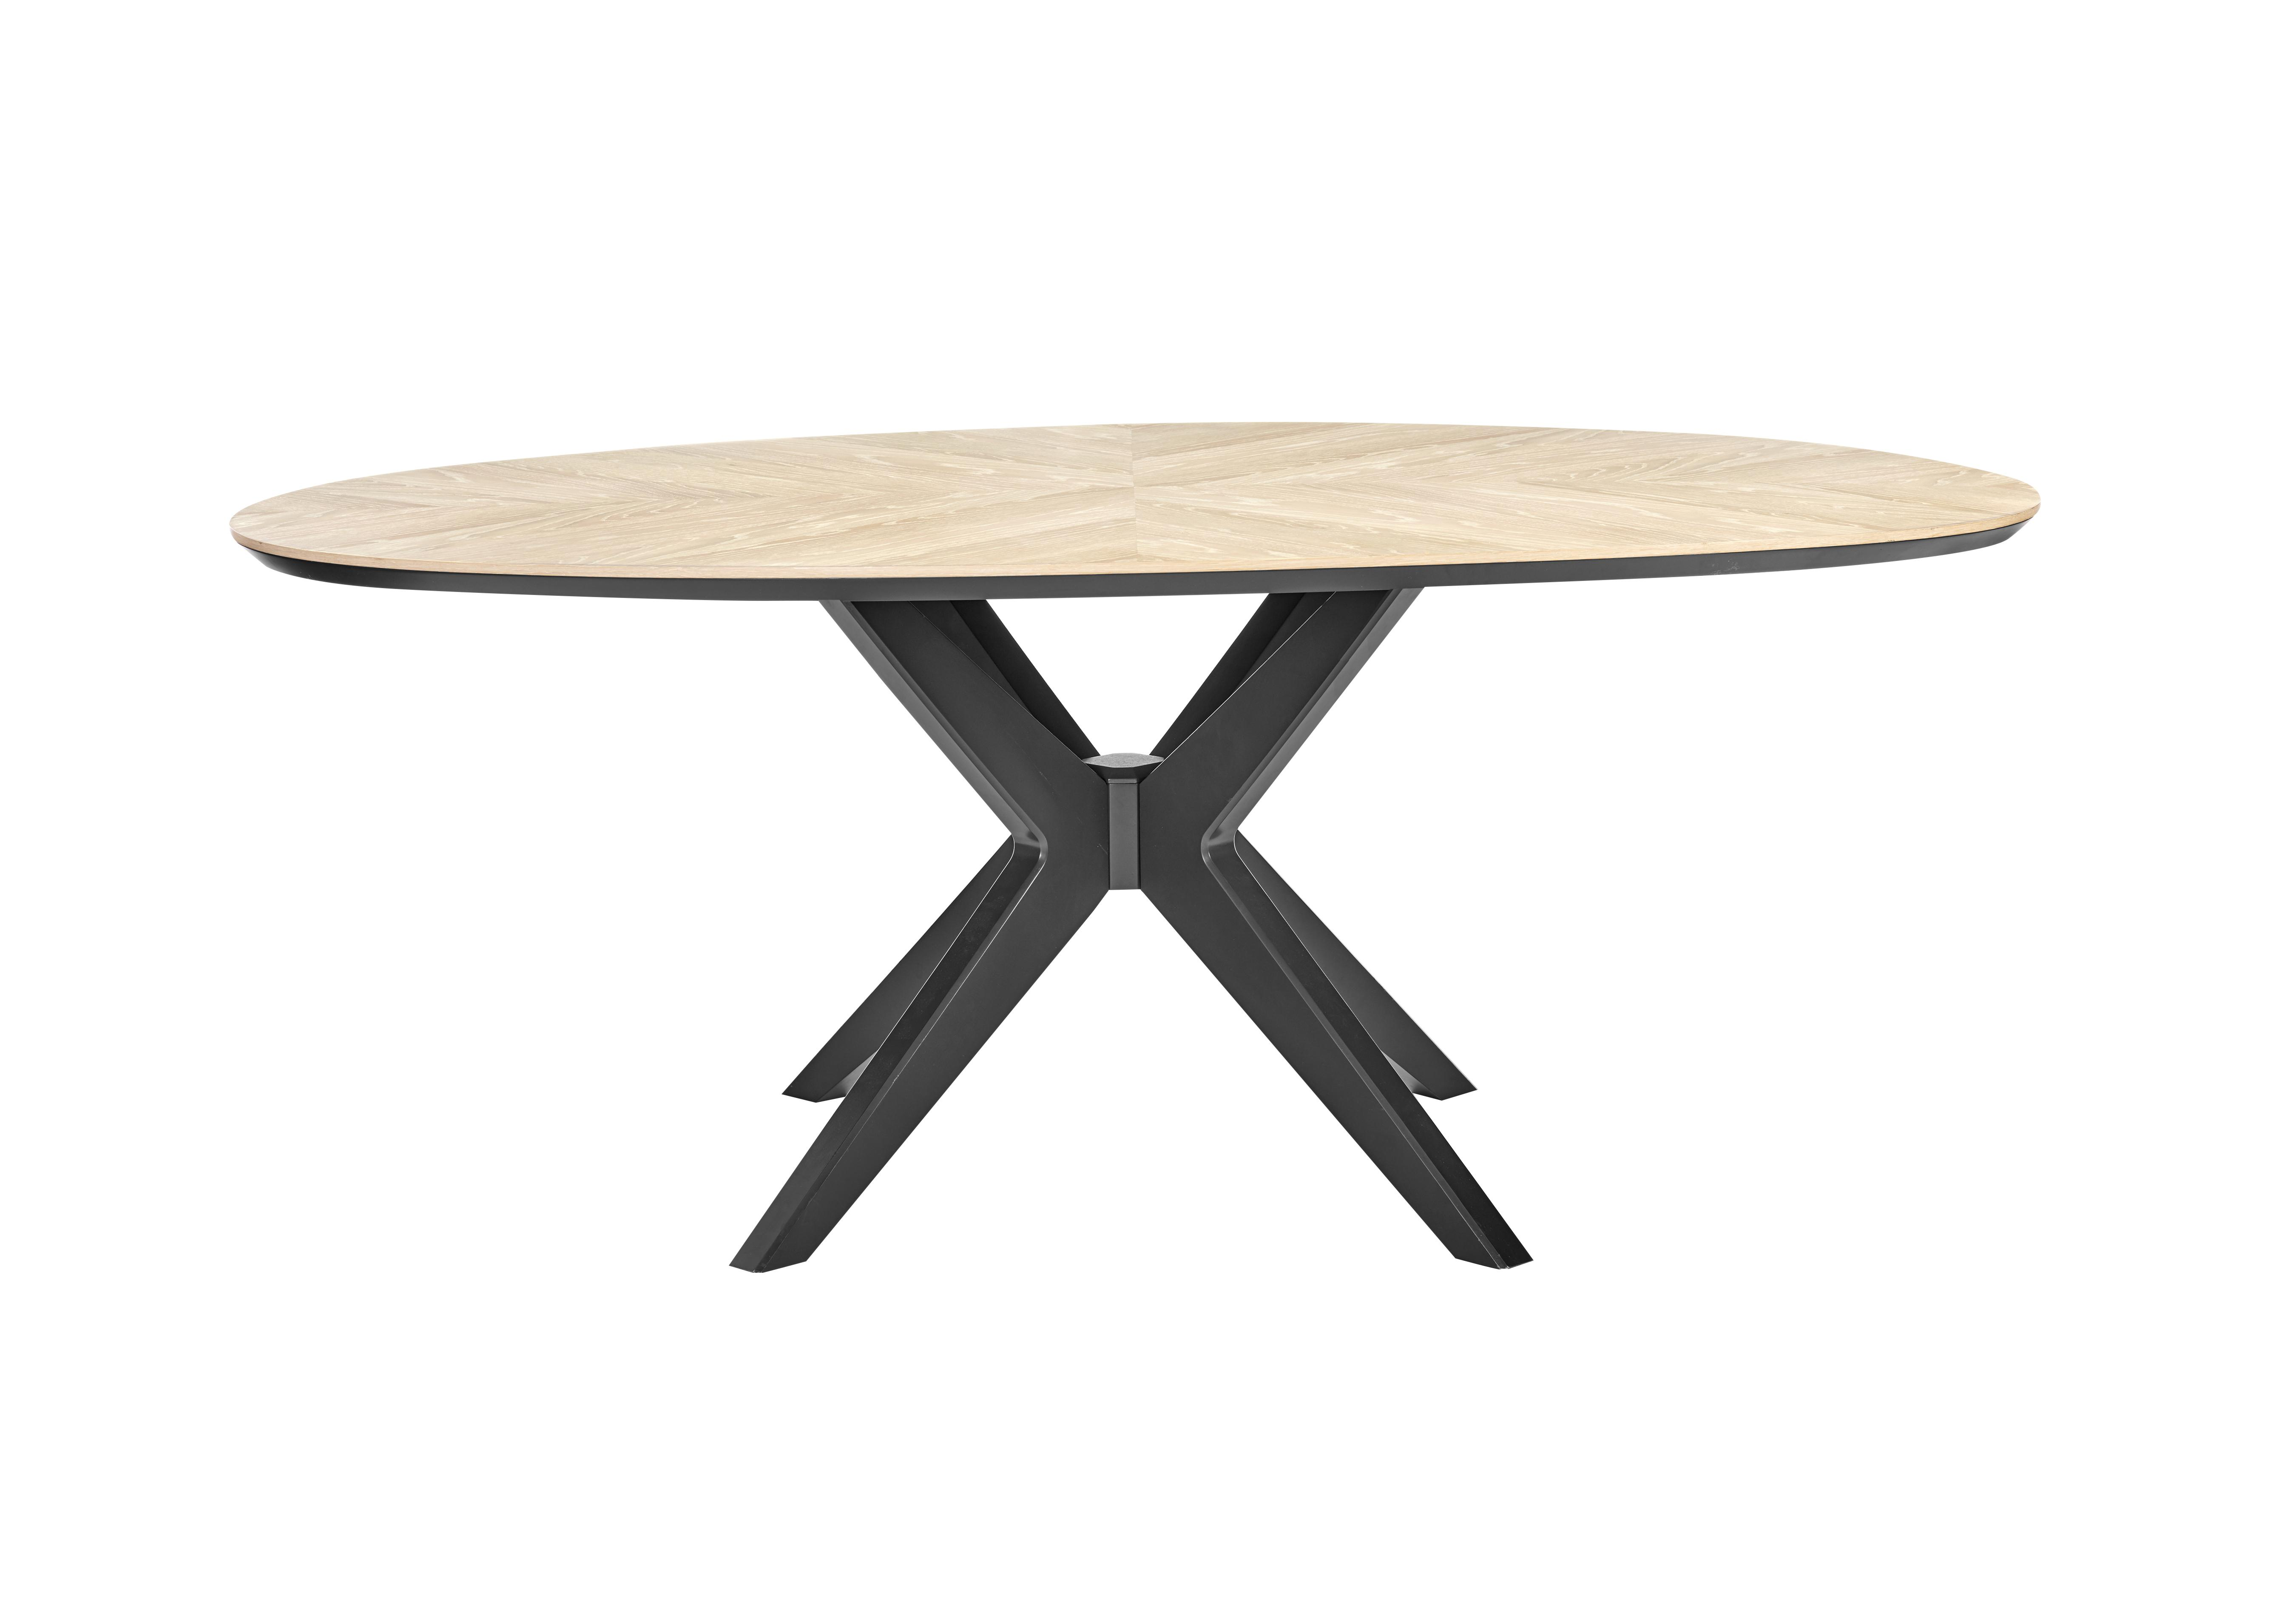 Velodrome Oval Dining Table  sc 1 st  Furniture Village & Velodrome Oval Dining Table - Furniture Village